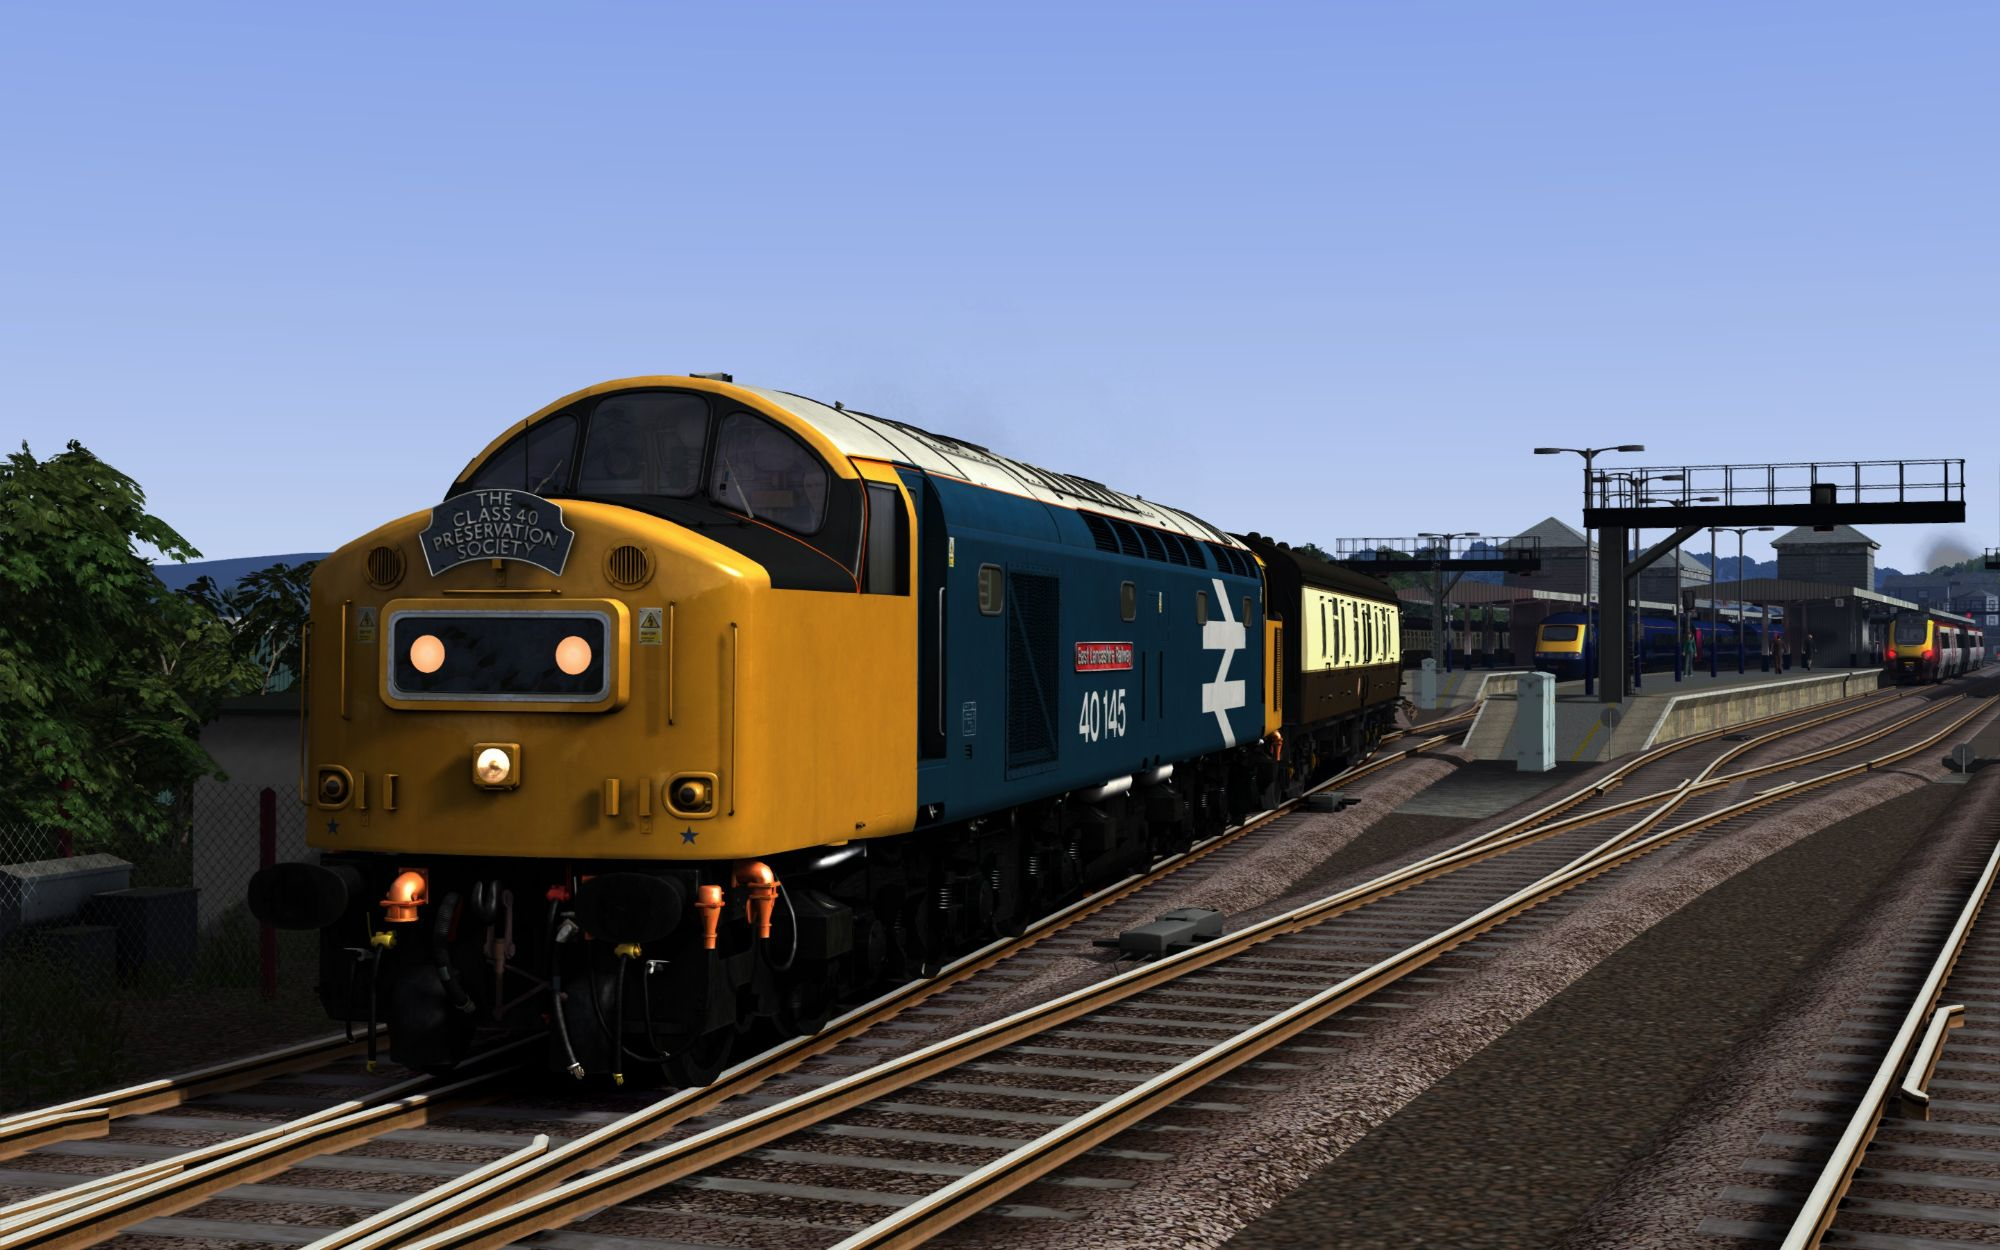 Image showing screenshot of the 1A77 - 0541 Penzance to London PaddiImage showing screenshot of the 1Z37 - 0547 Portsmouth Harbour to Penzance scenariongton scenario